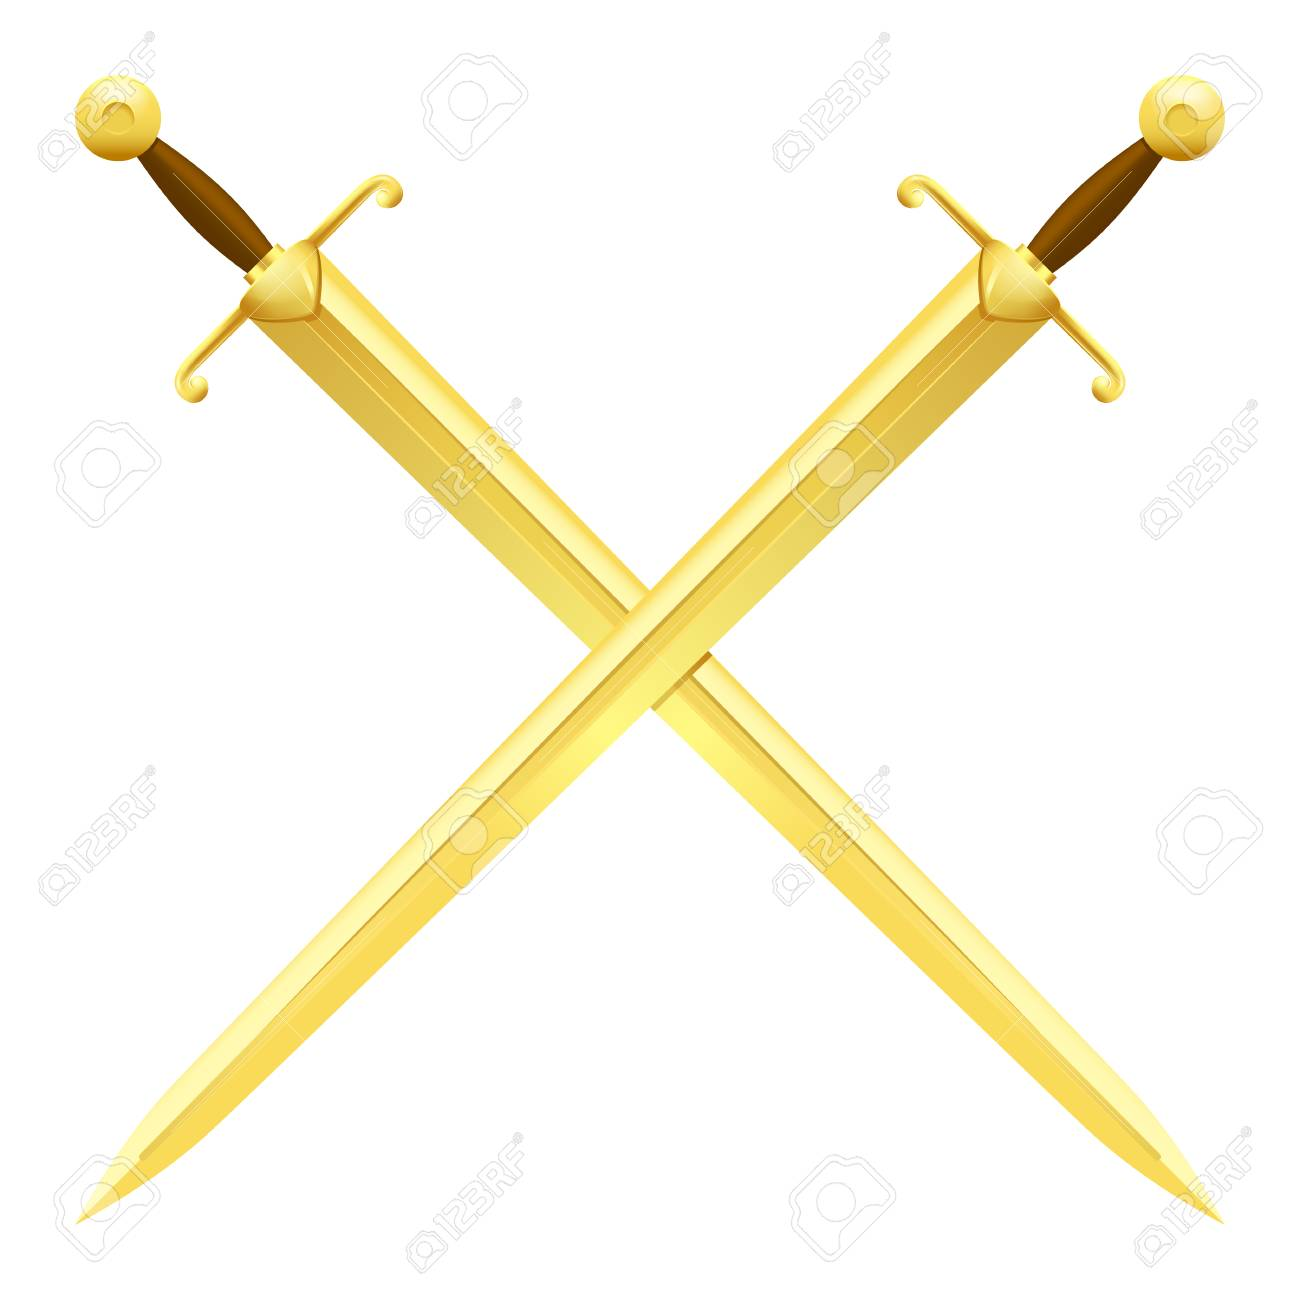 Two Crossed Swords of Gold on White Background.